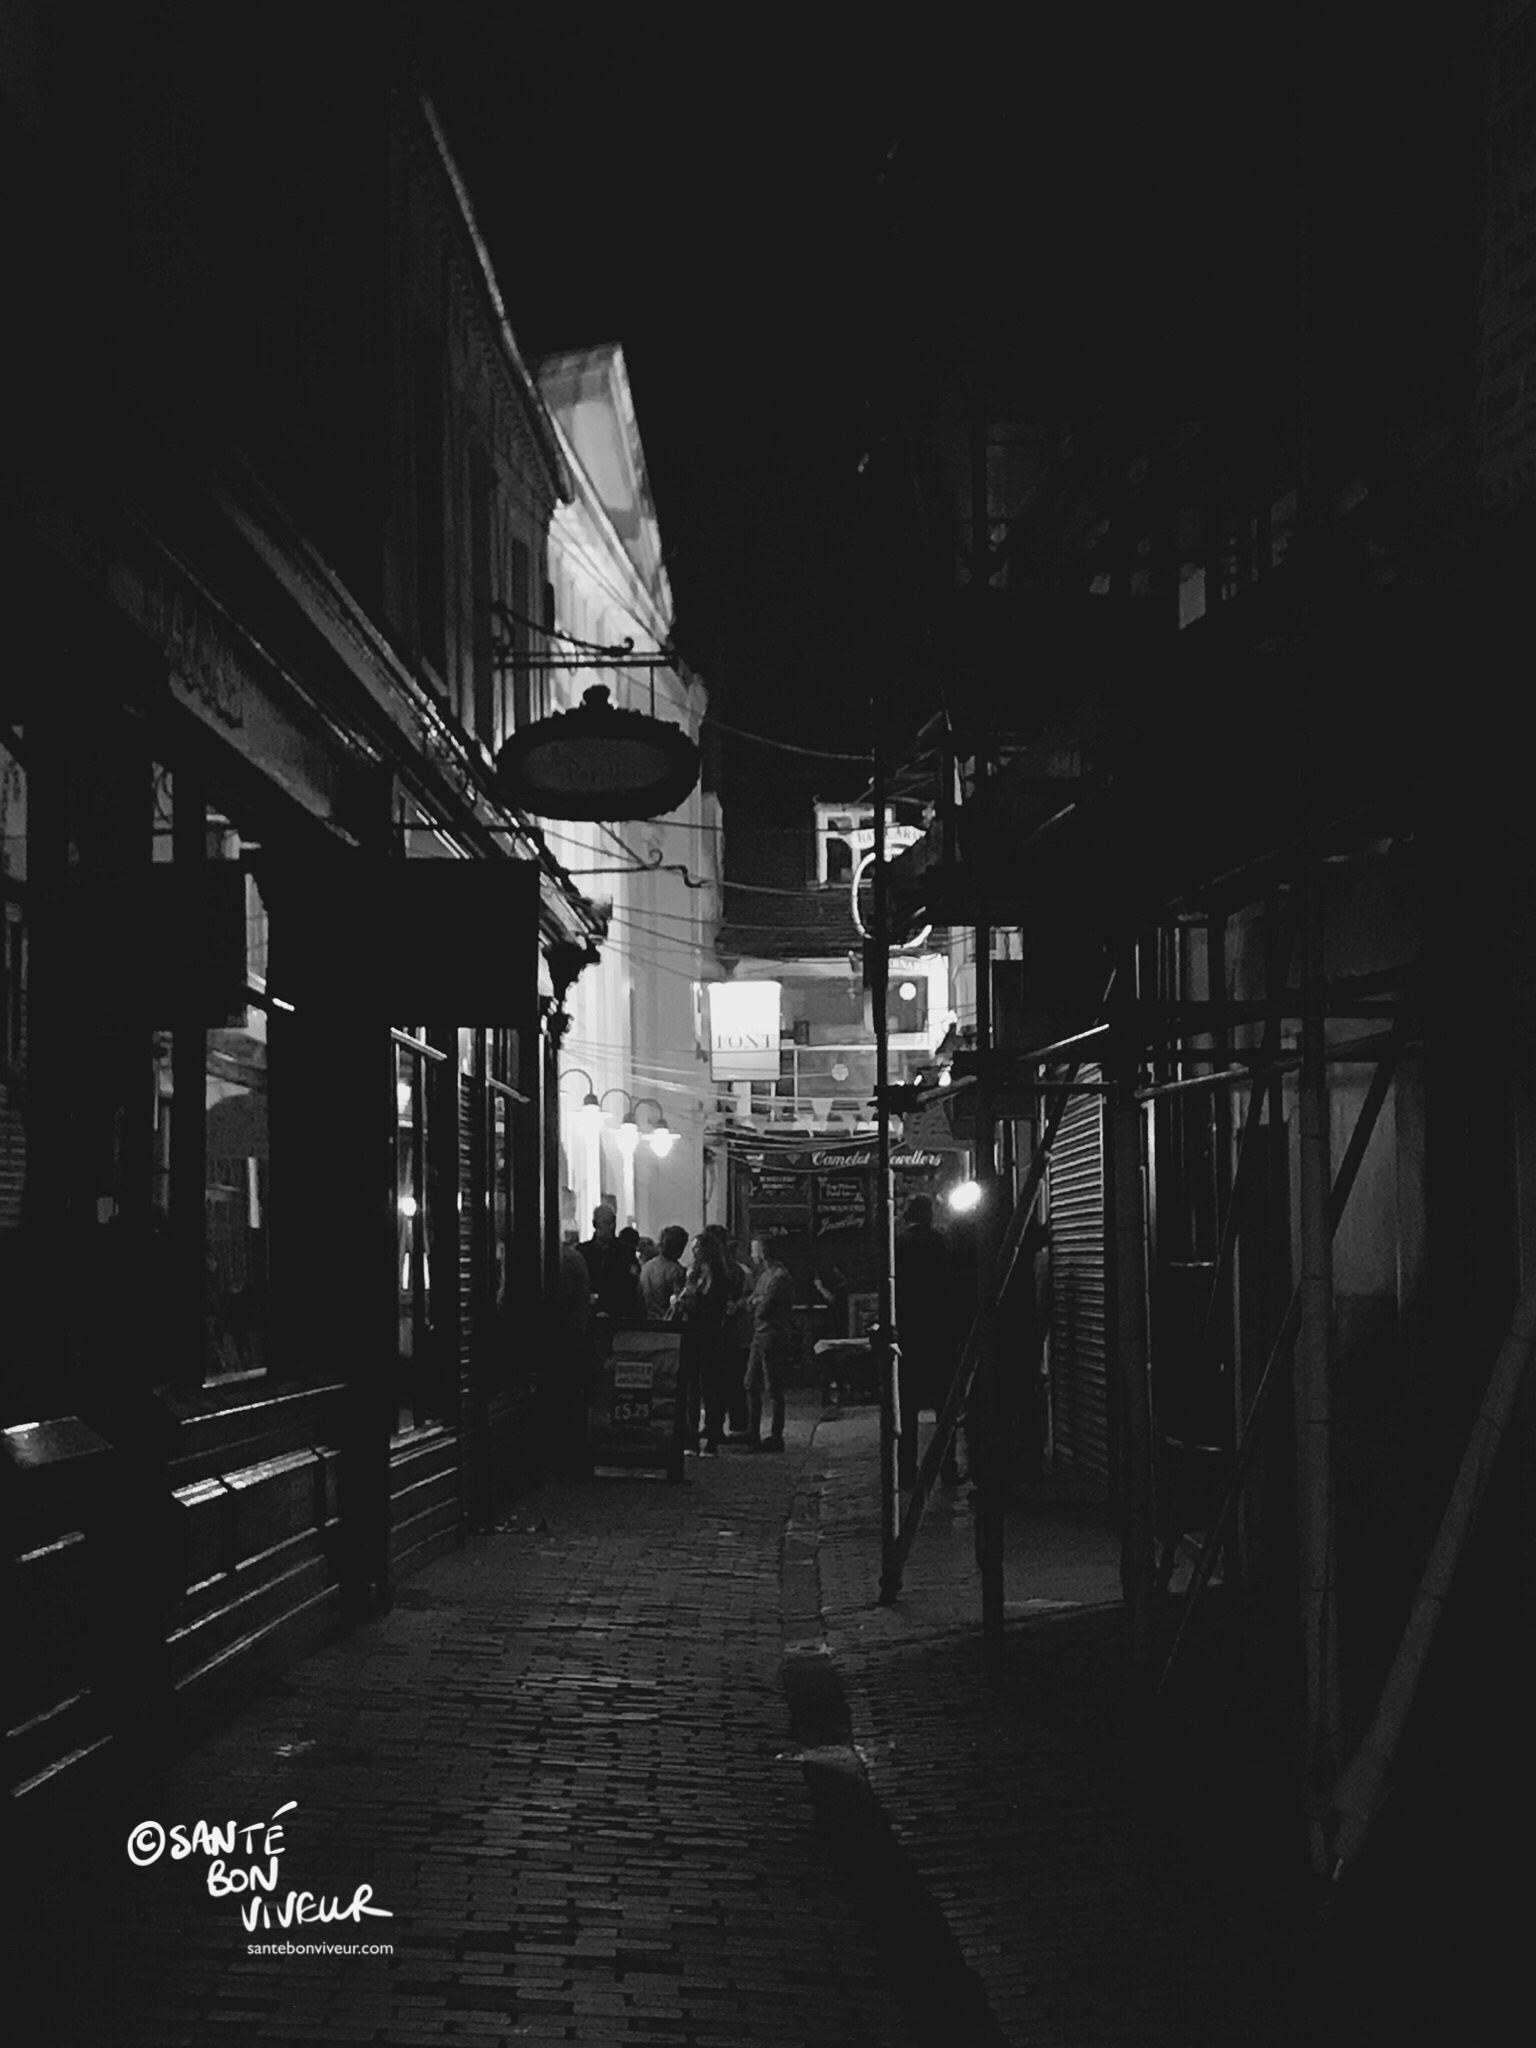 The sophistication and atmosphere of The Lanes takes on a different character by night